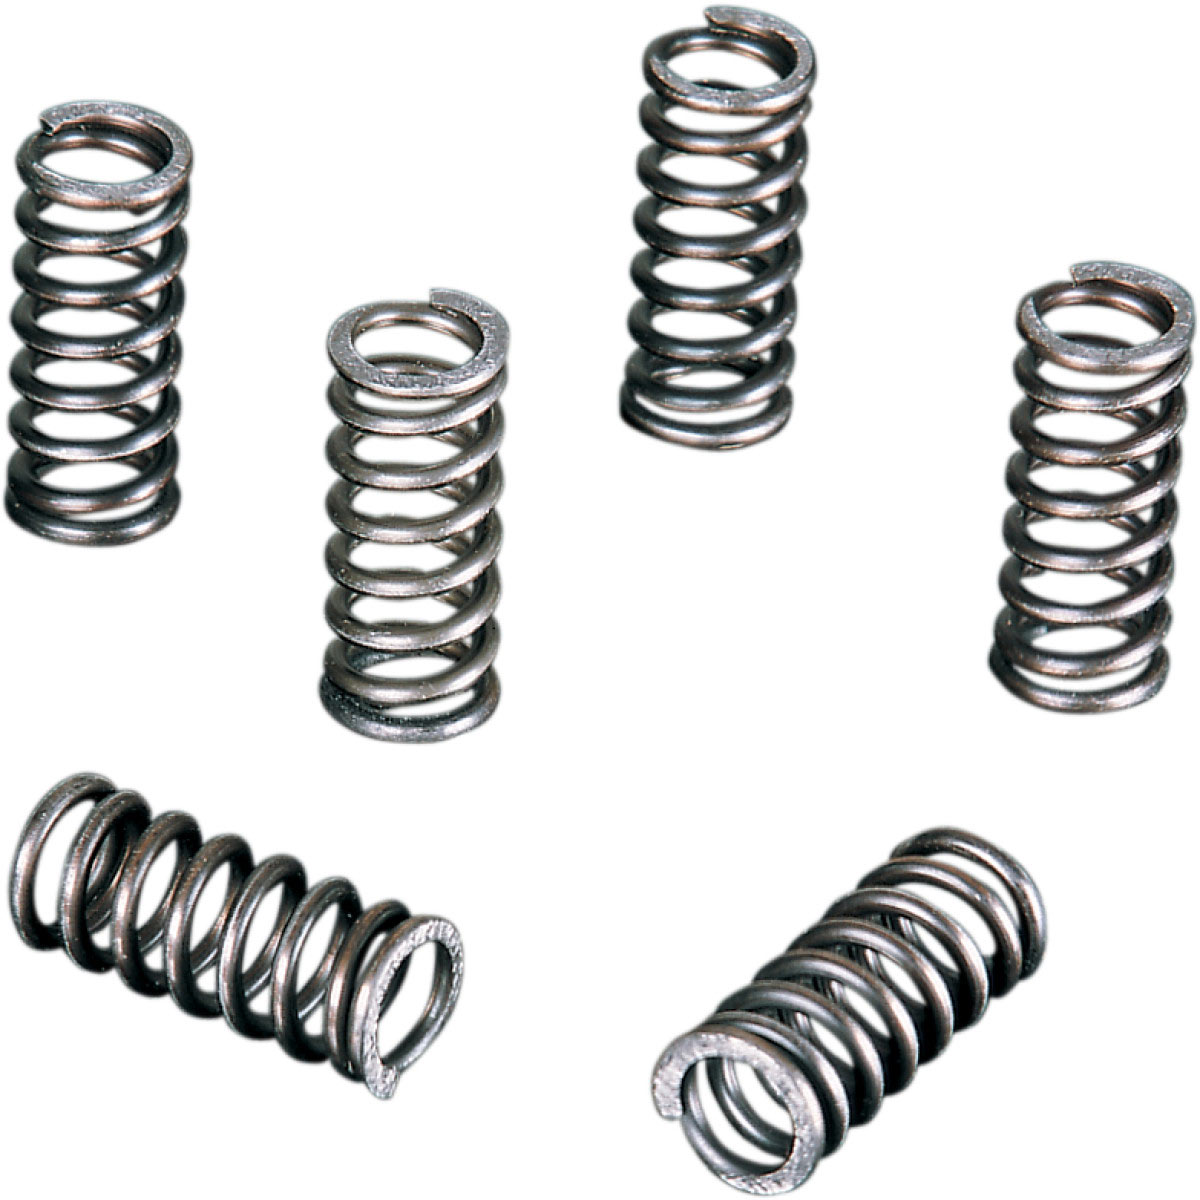 Vesrah Heavy-Duty Clutch Spring Set for VN800E Vulcan